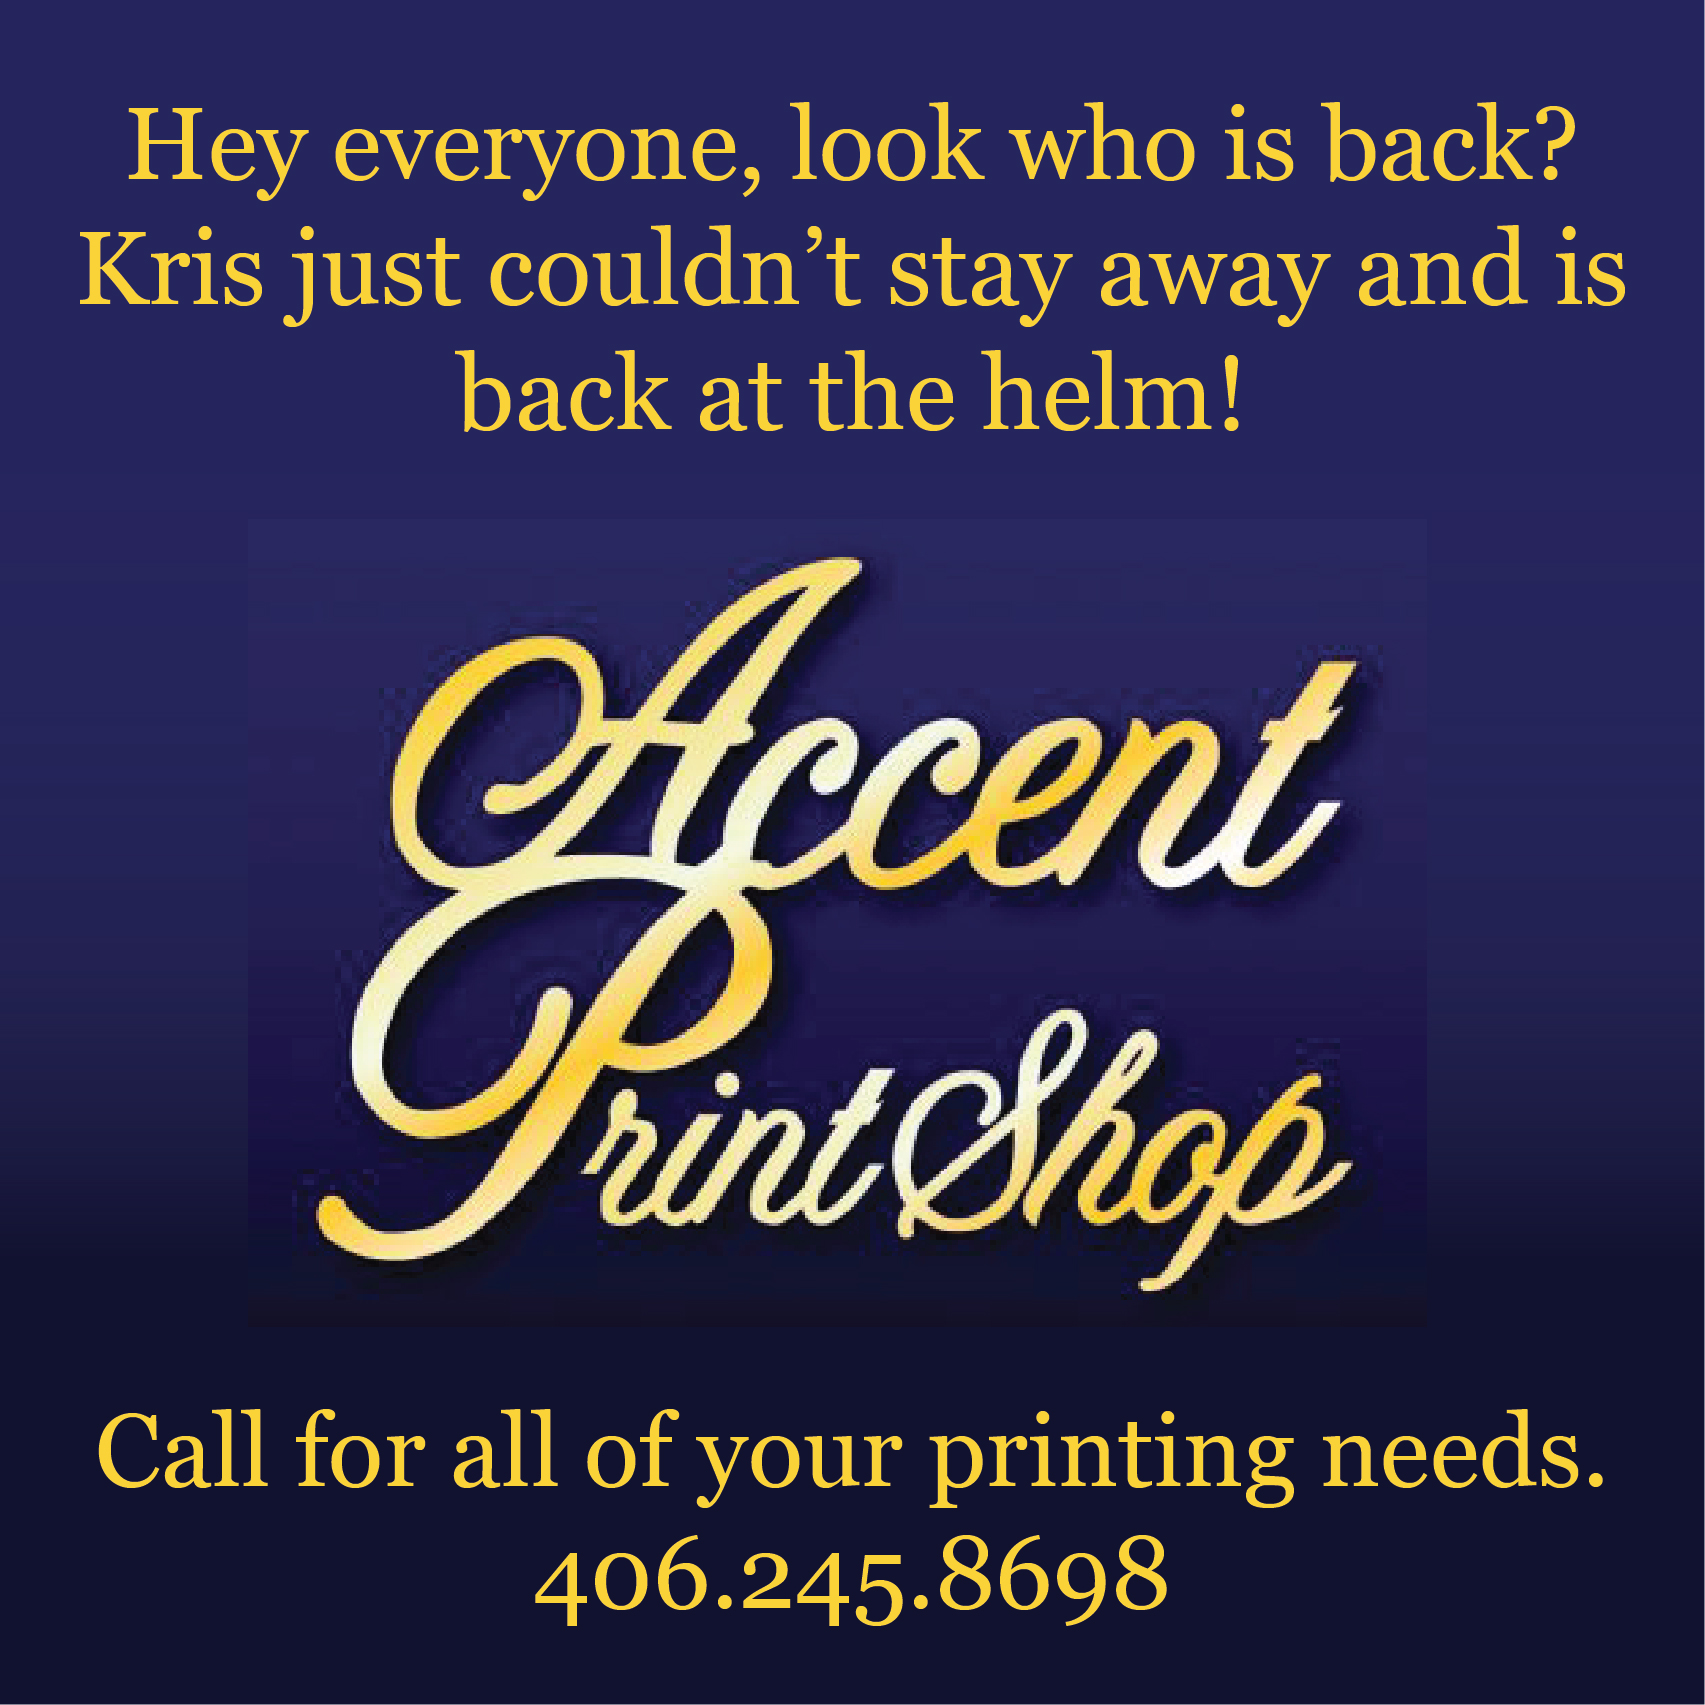 Accent Print Shop Look Whos Back-01